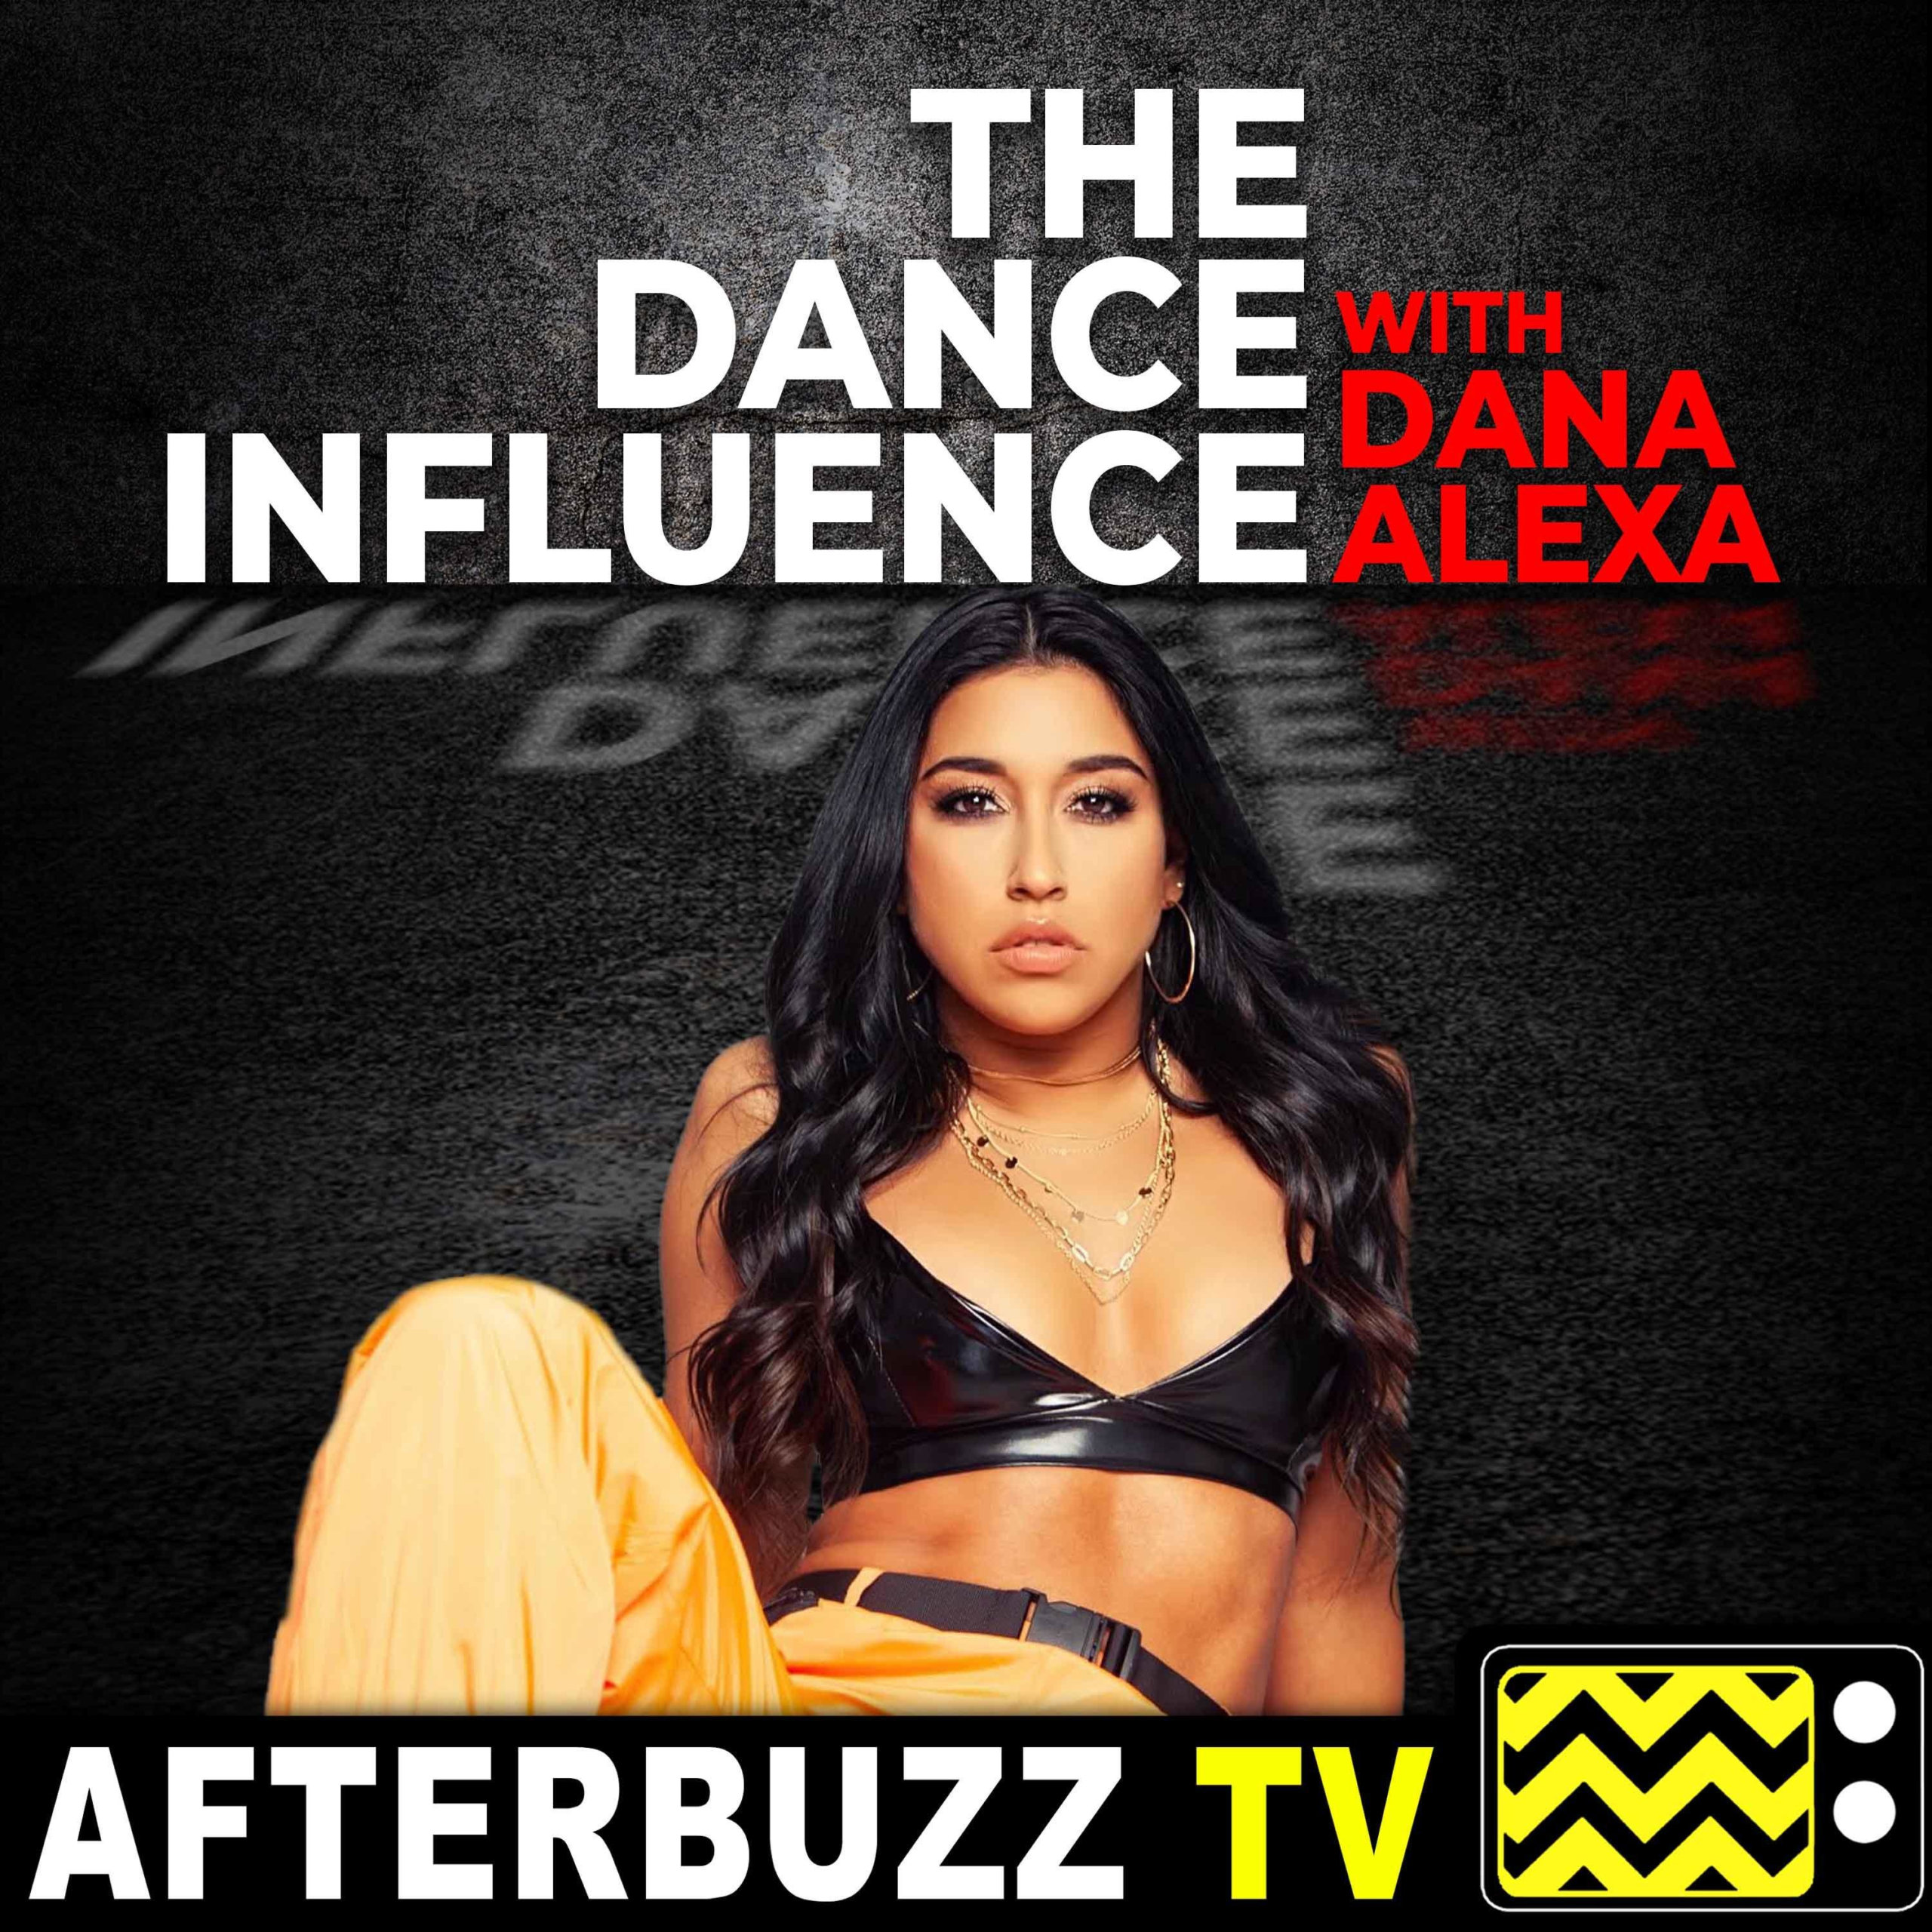 The Dance Influence with Dana Alexa